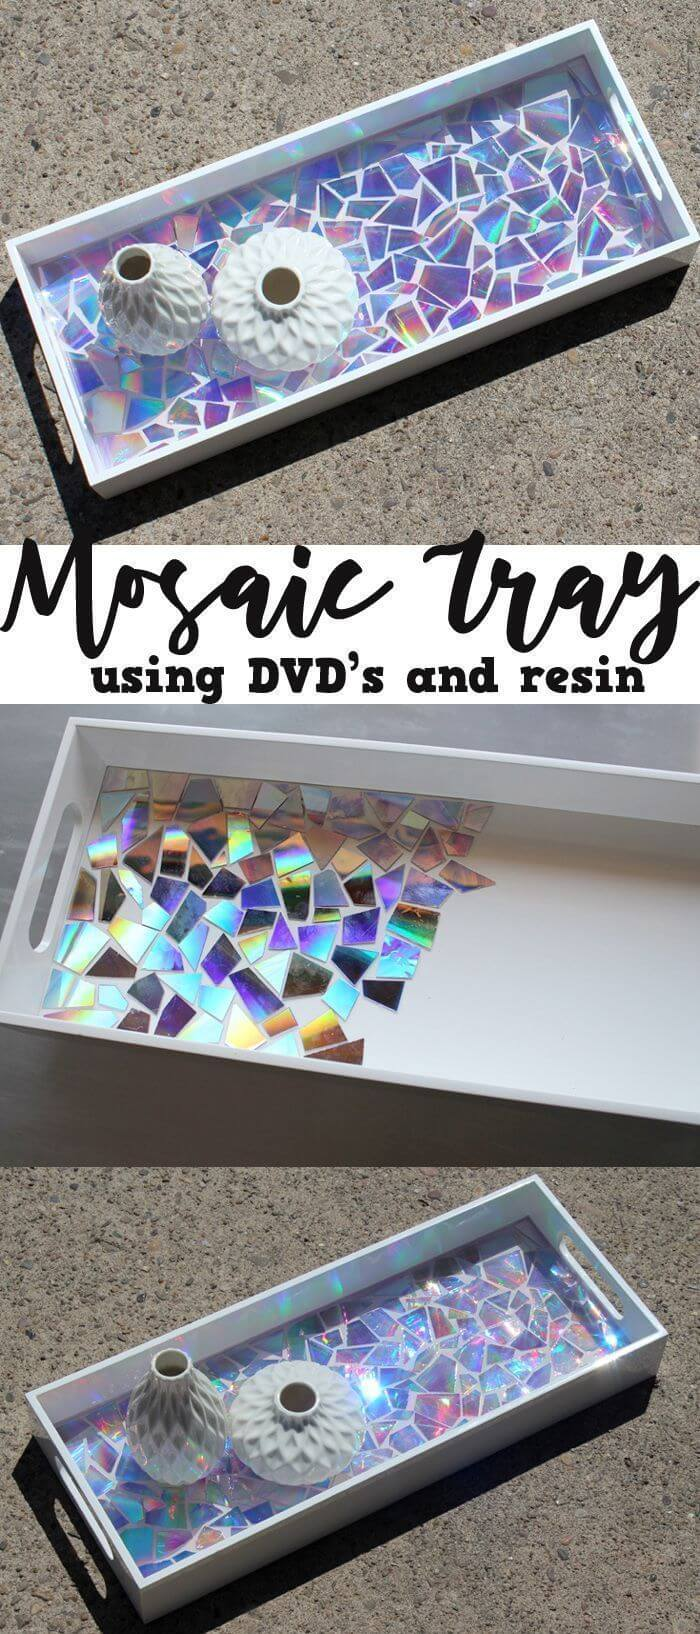 Inventive Use of DVDs in a Mosaic